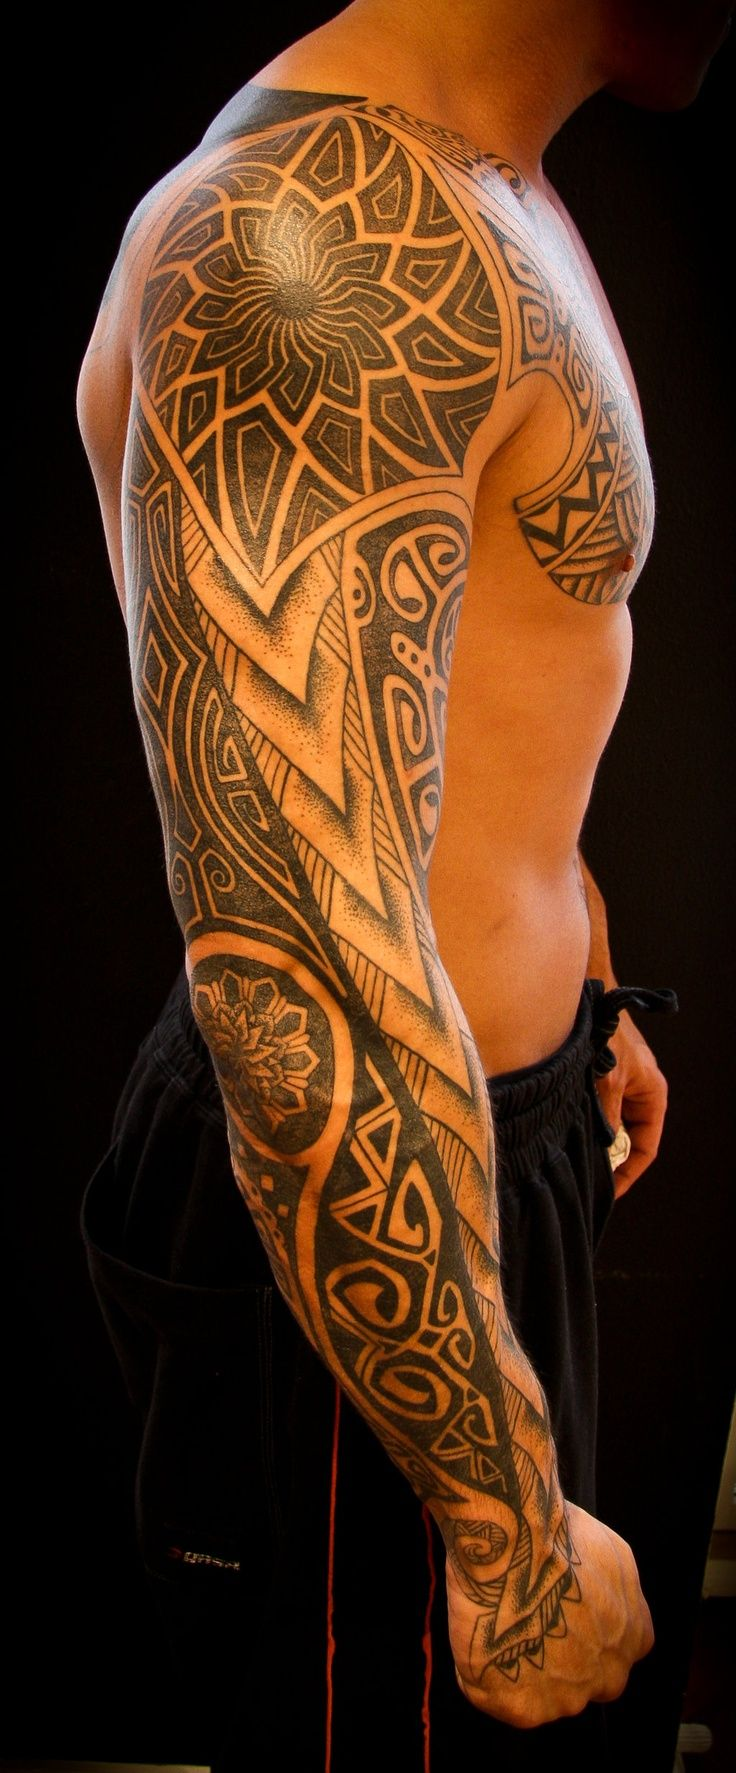 arm tattoos for men designs and ideas for guys. Black Bedroom Furniture Sets. Home Design Ideas